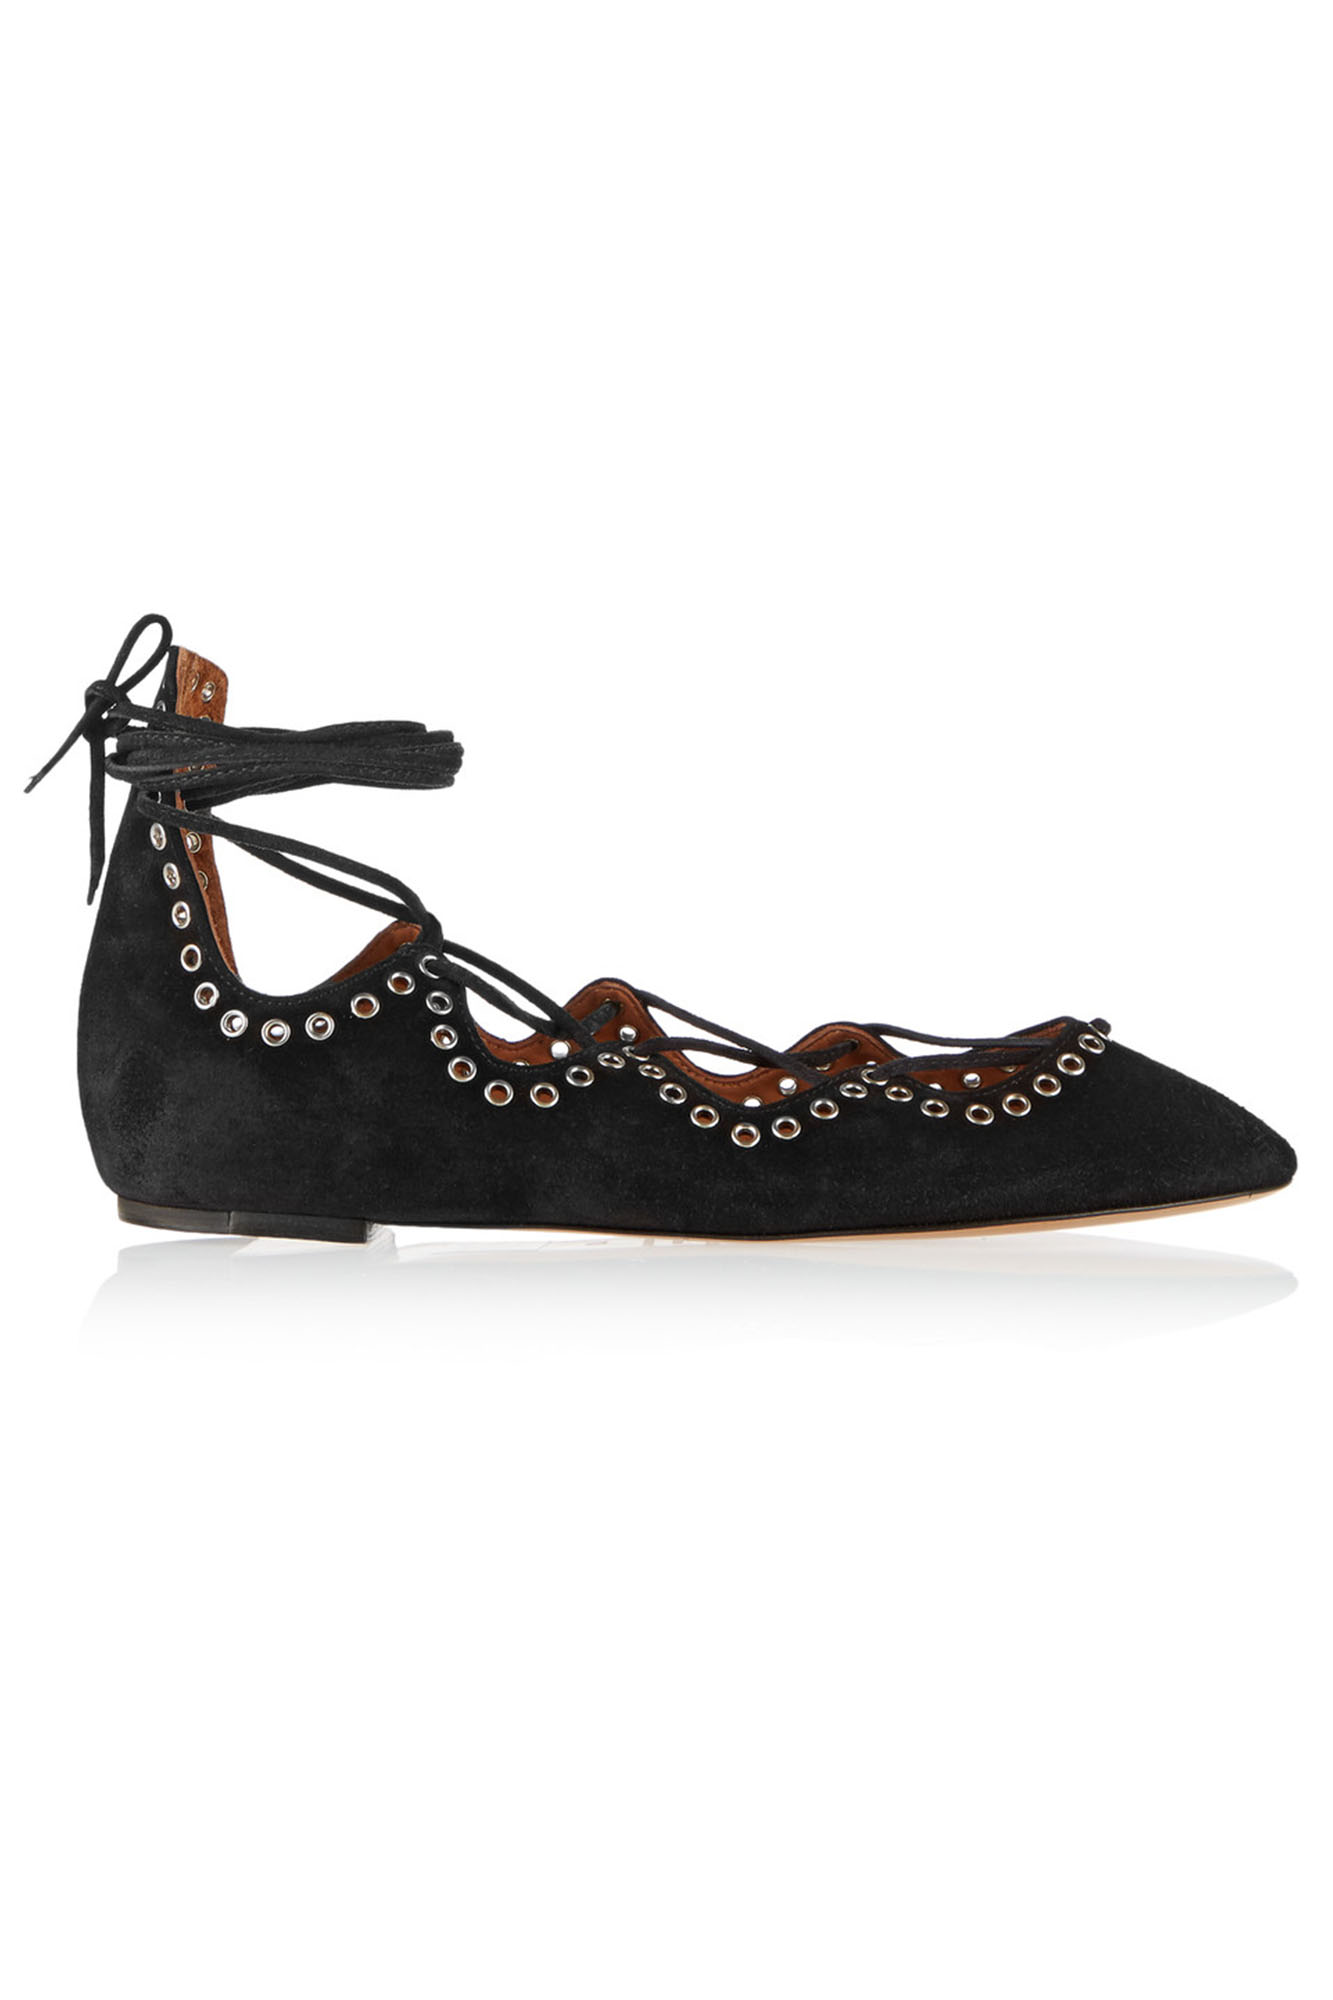 stylish flat shoes for women 2013 wwwpixsharkcom